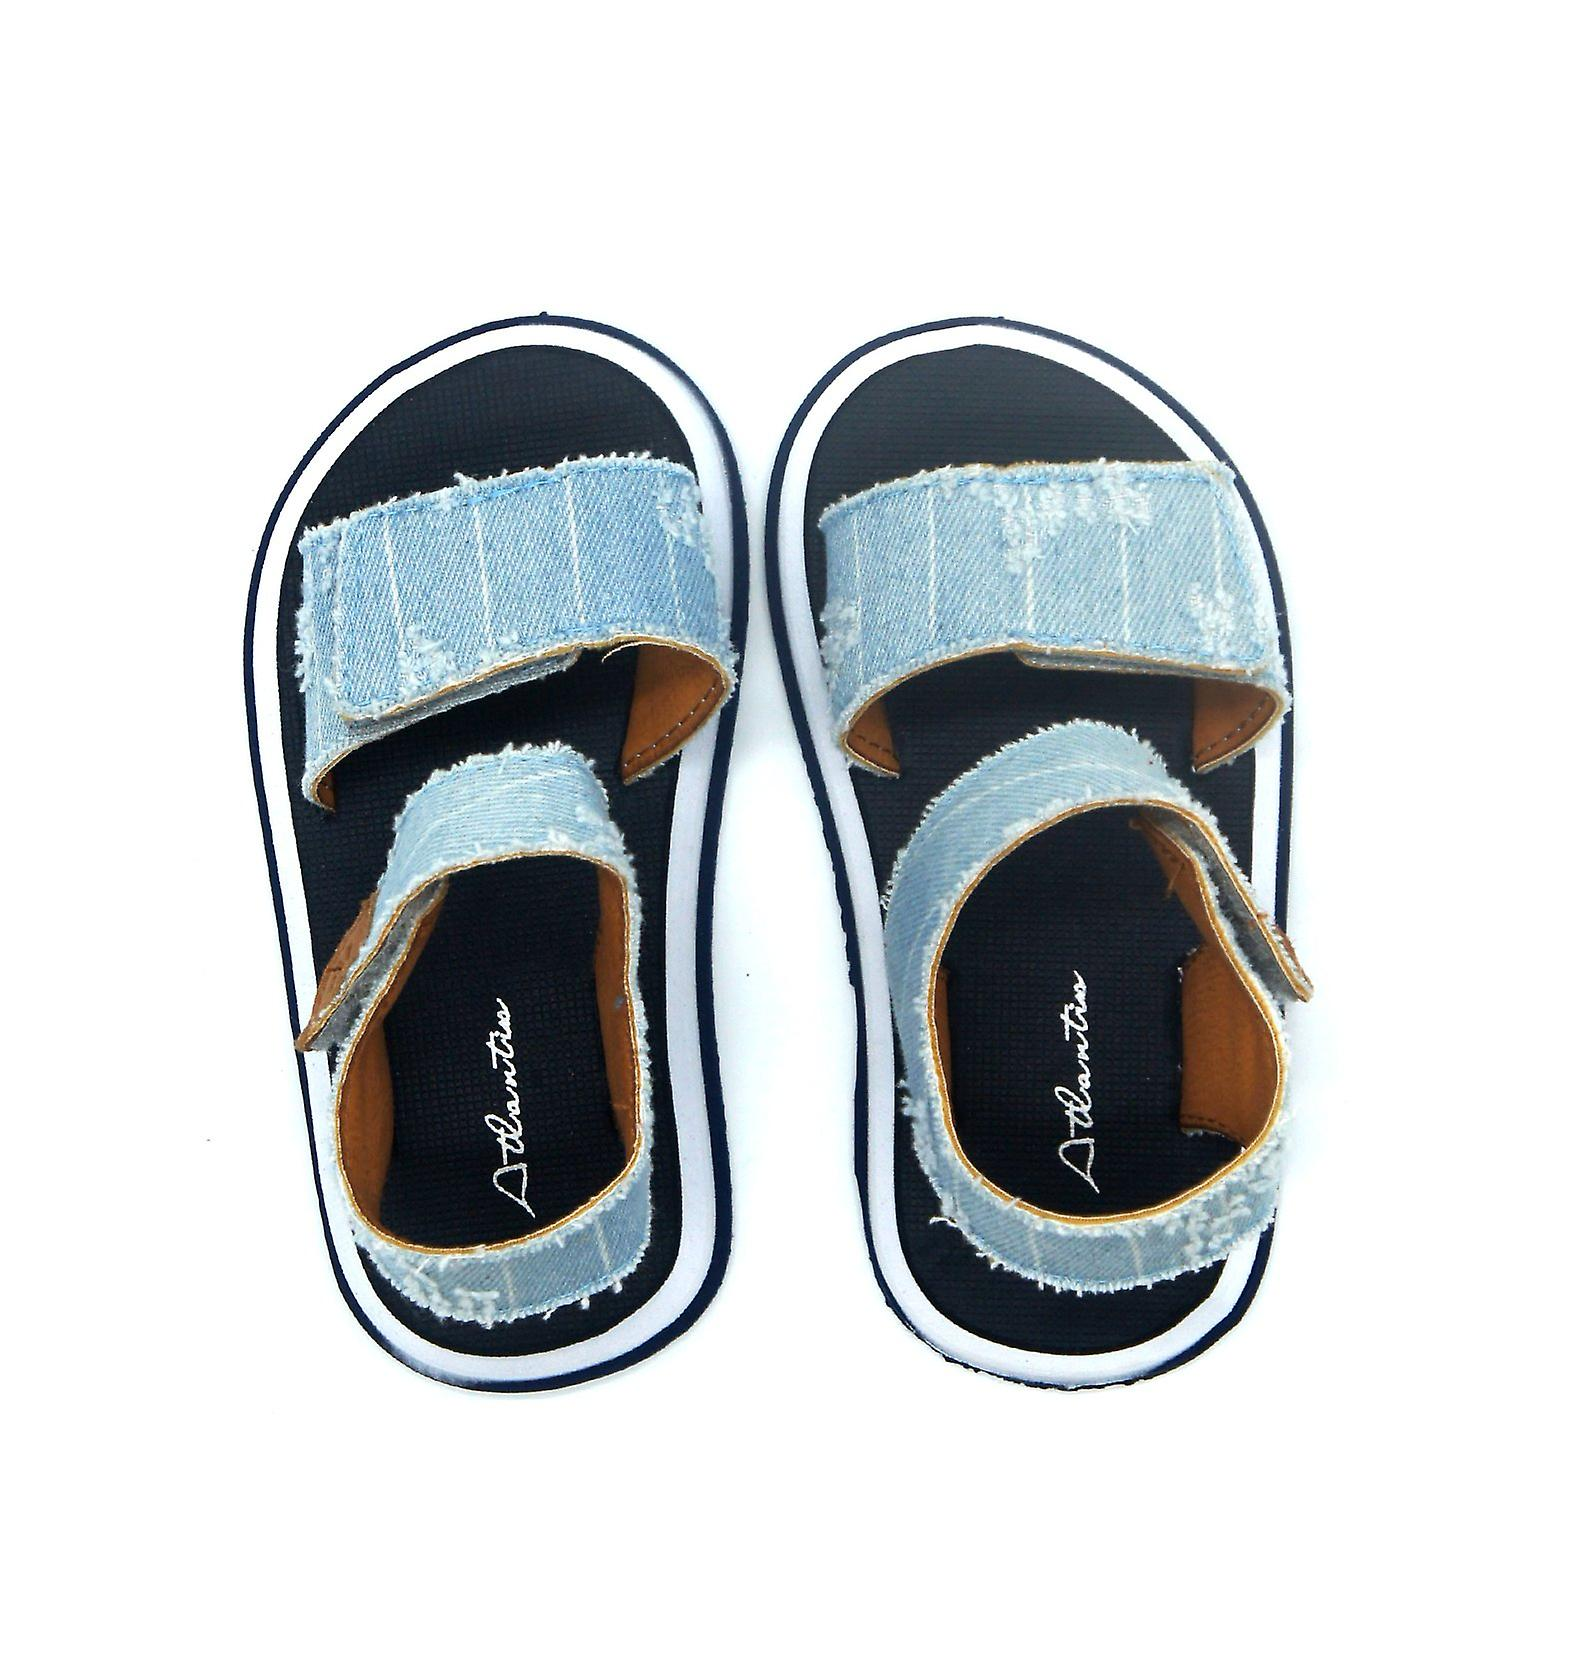 Atlantis Shoes Kids Unisex Girls & Boys Supportive Cushioned Comfortable Sandals Cowboy Blue